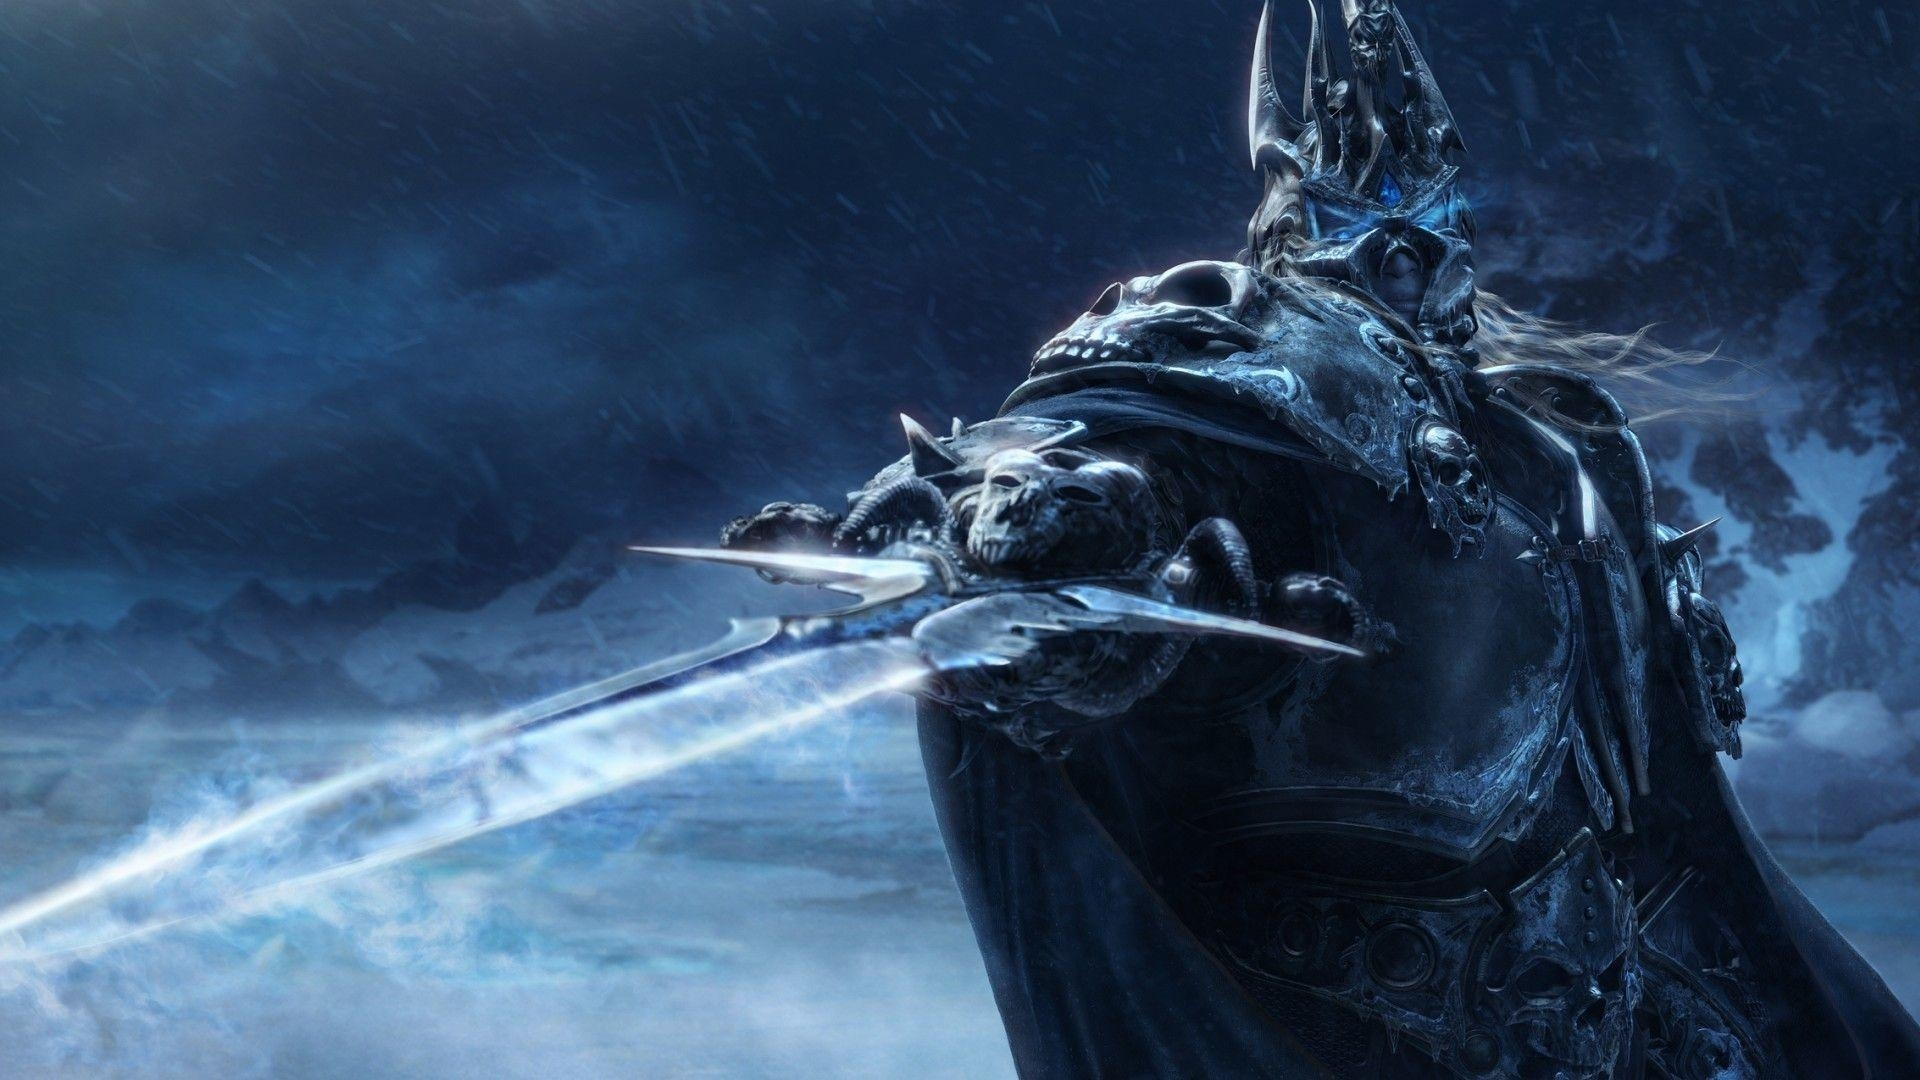 10 Best Lich King Wallpaper Hd FULL HD 1920×1080 For PC Background